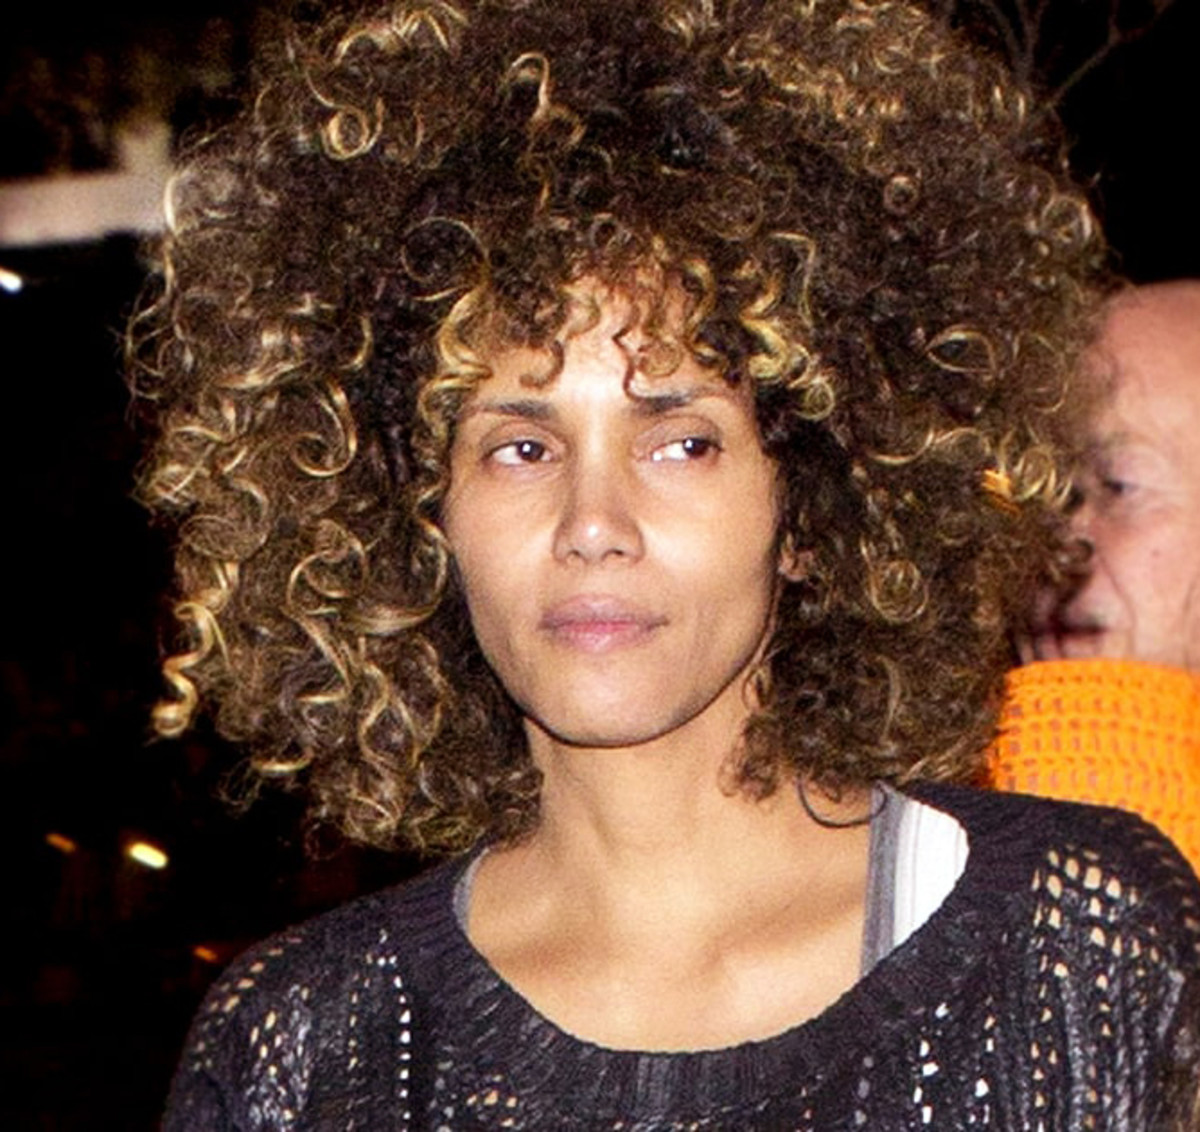 Halle Berry out with friends in January 2017, with rock-star hair and zero makeup.